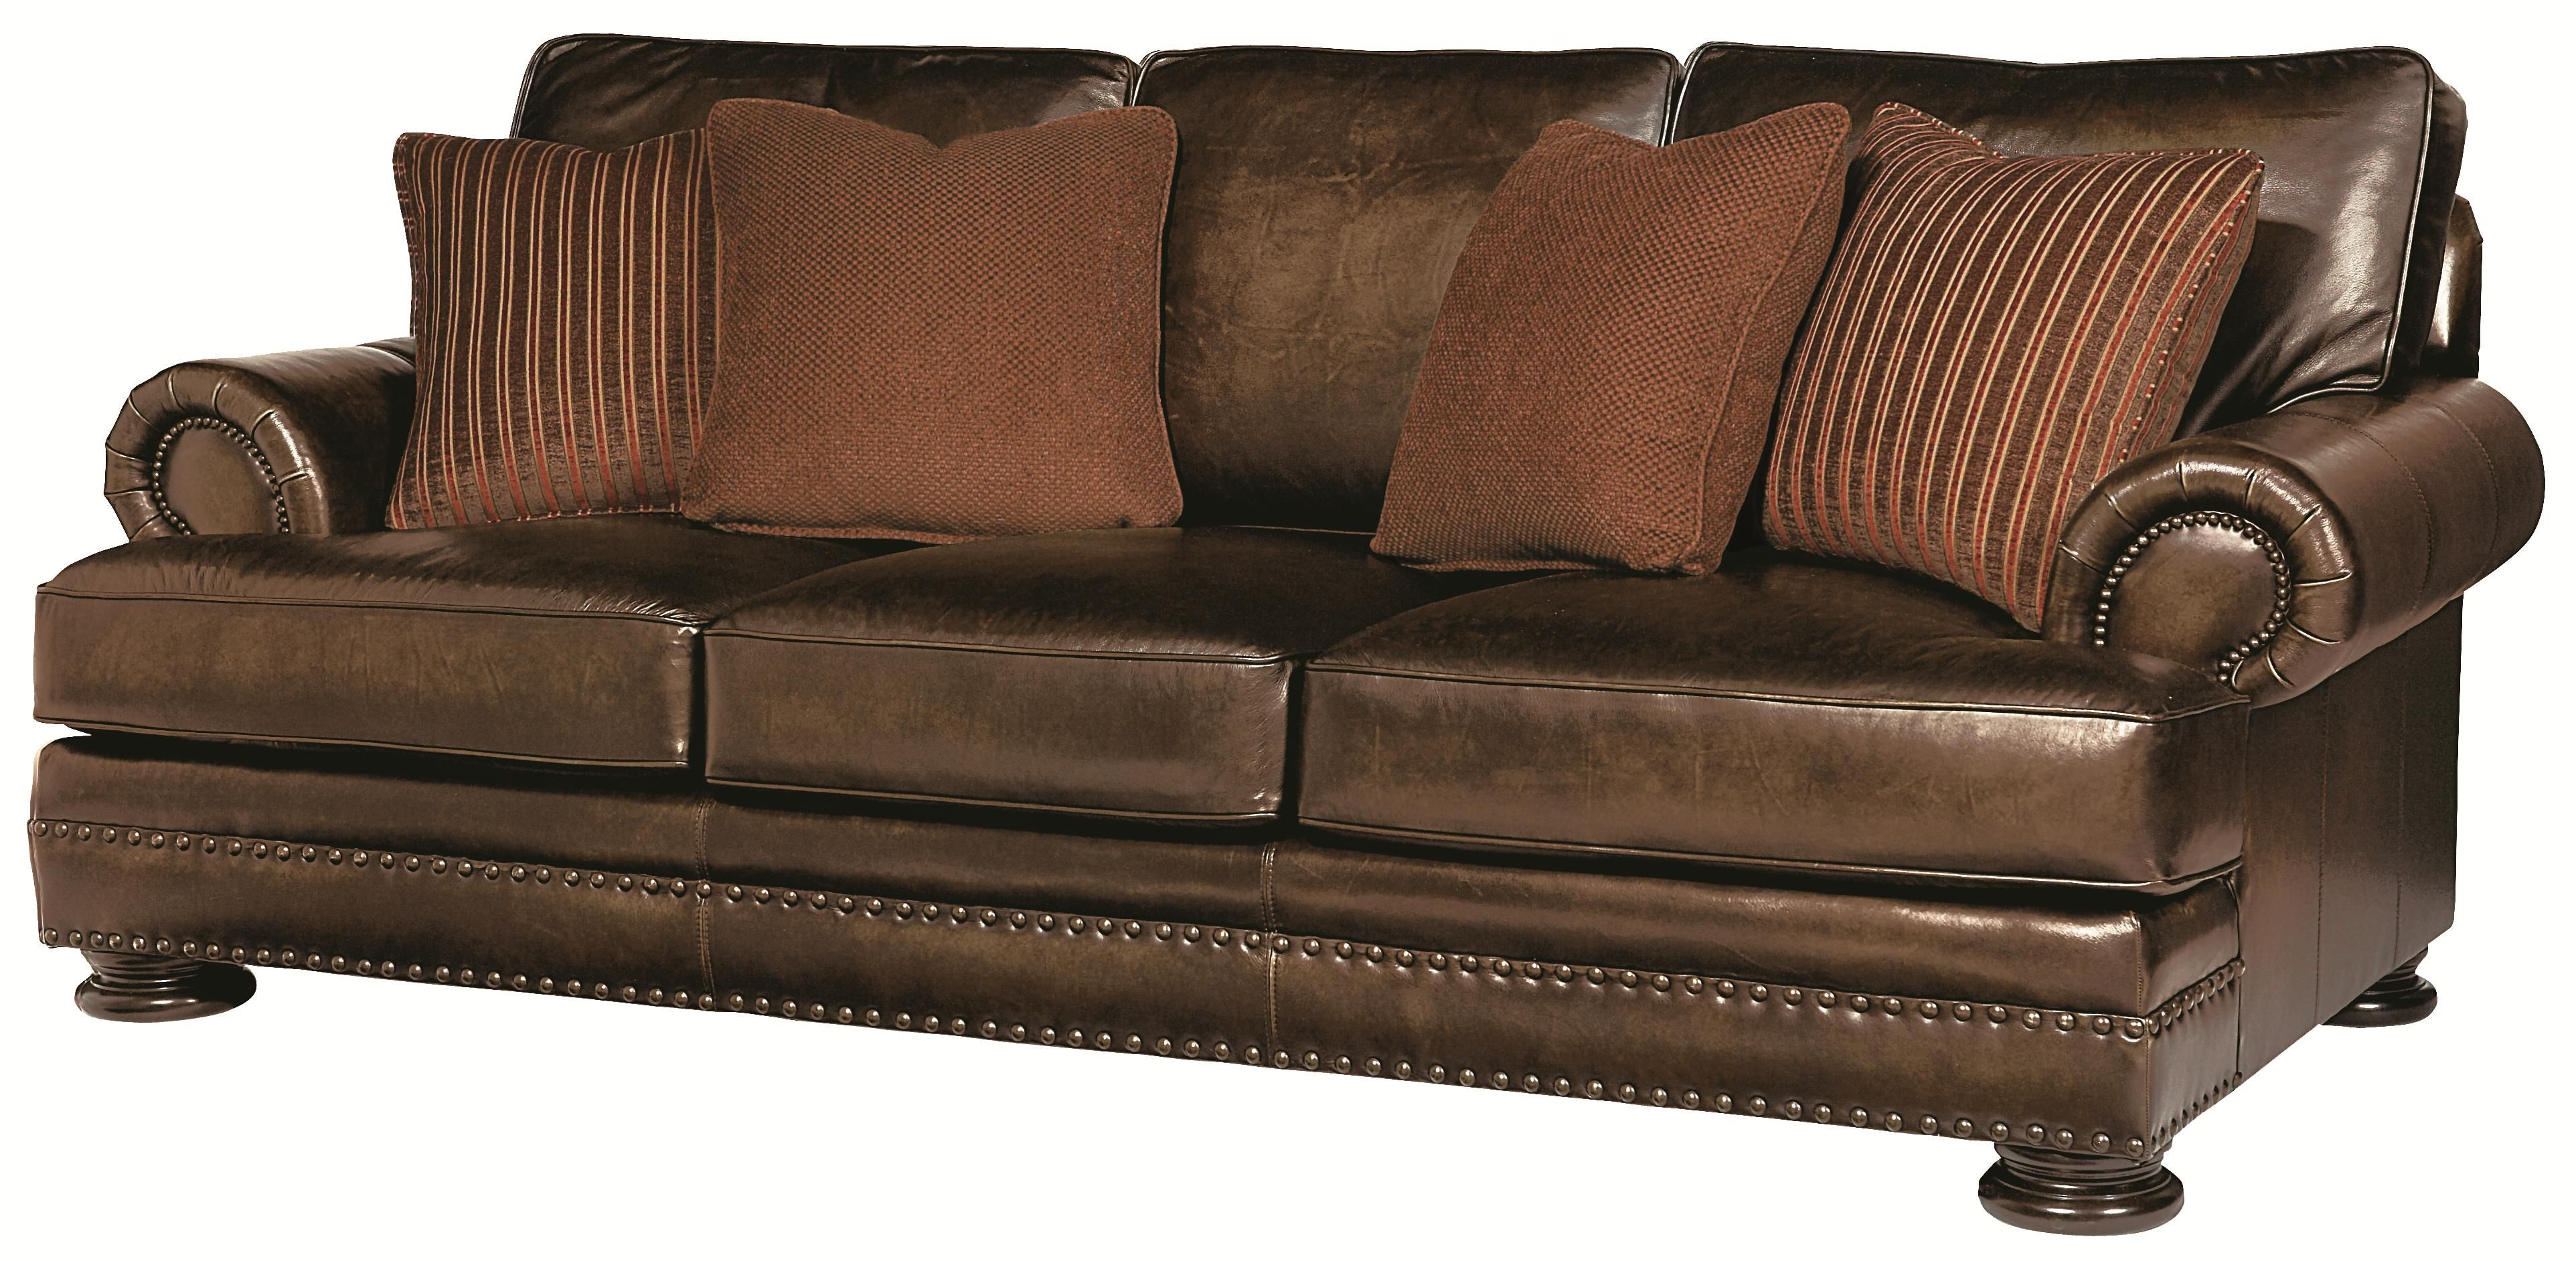 Foster Sofa By Bernhardt 2099 At Belfort Furniture Leather